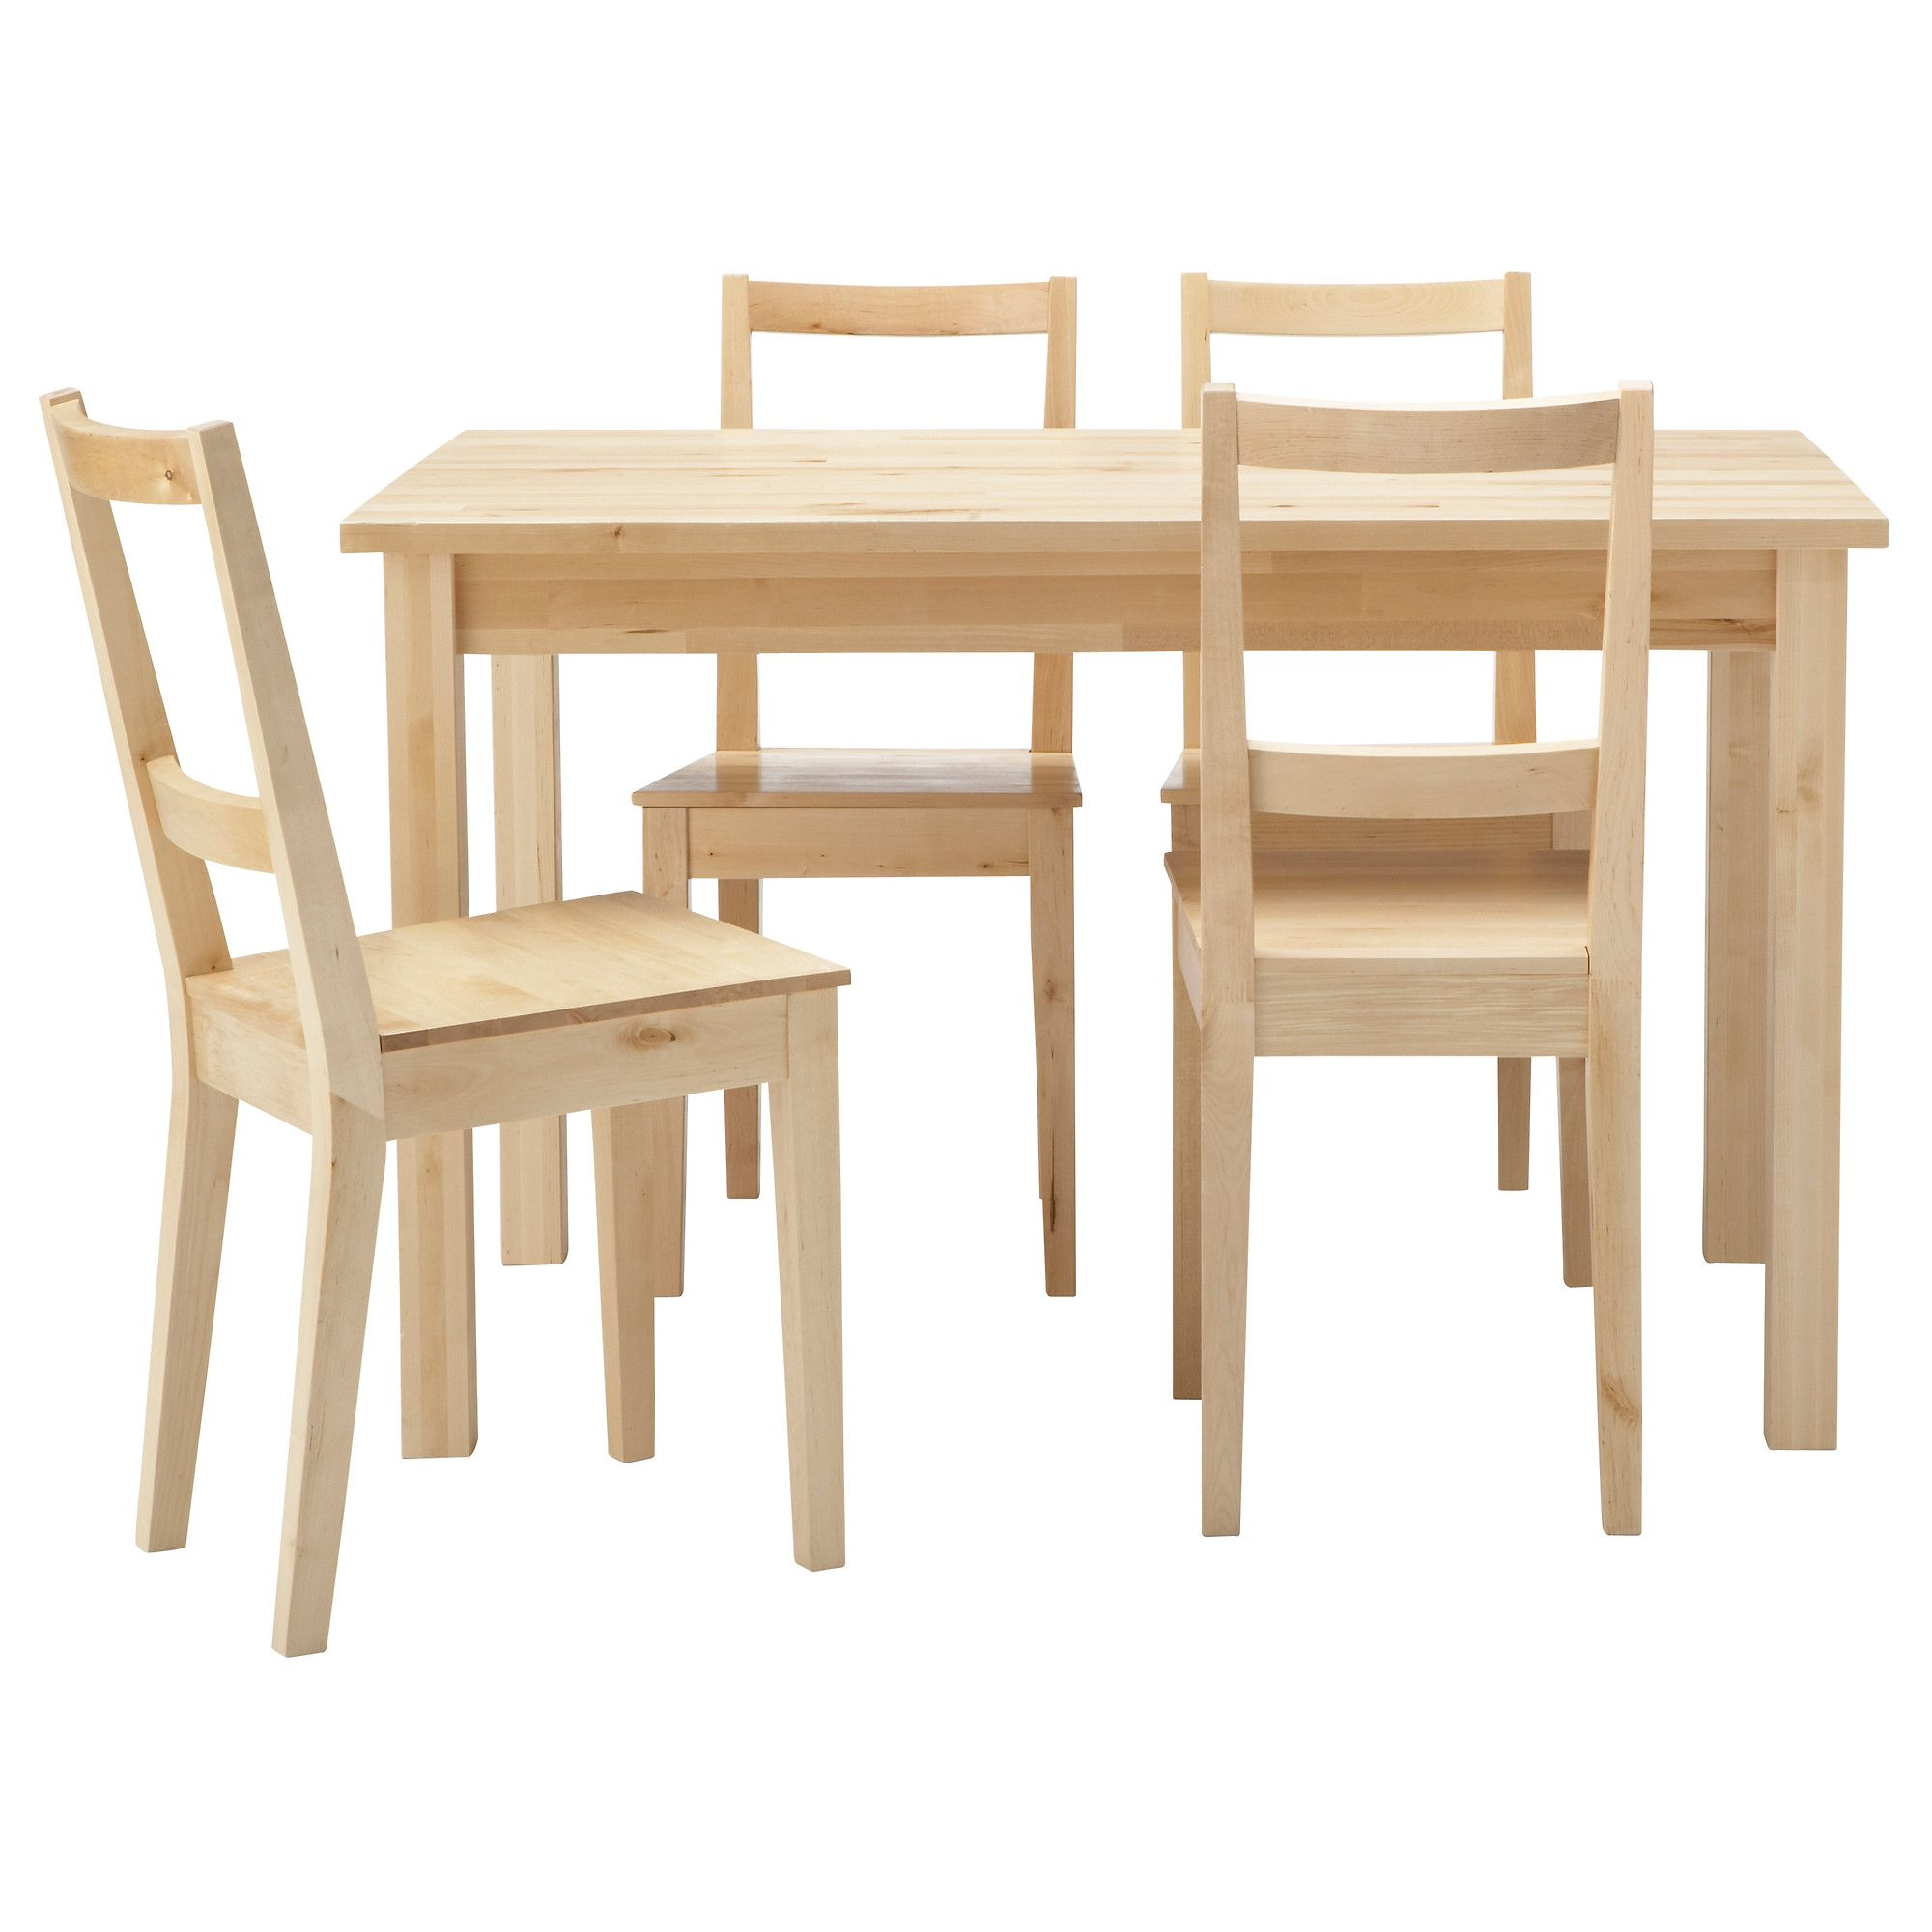 Dining Room Tables Ikea: Charming Solid Wood Dining Table And 4 Chairs